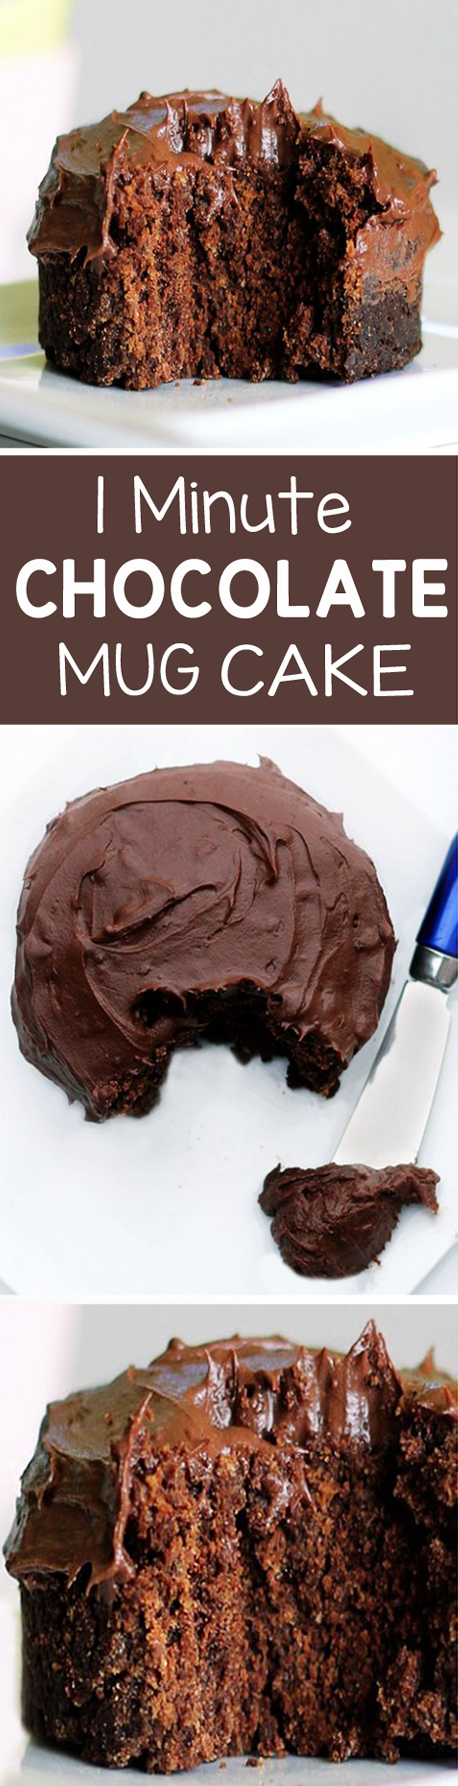 1 Minute Chocolate Cake In A Mug!